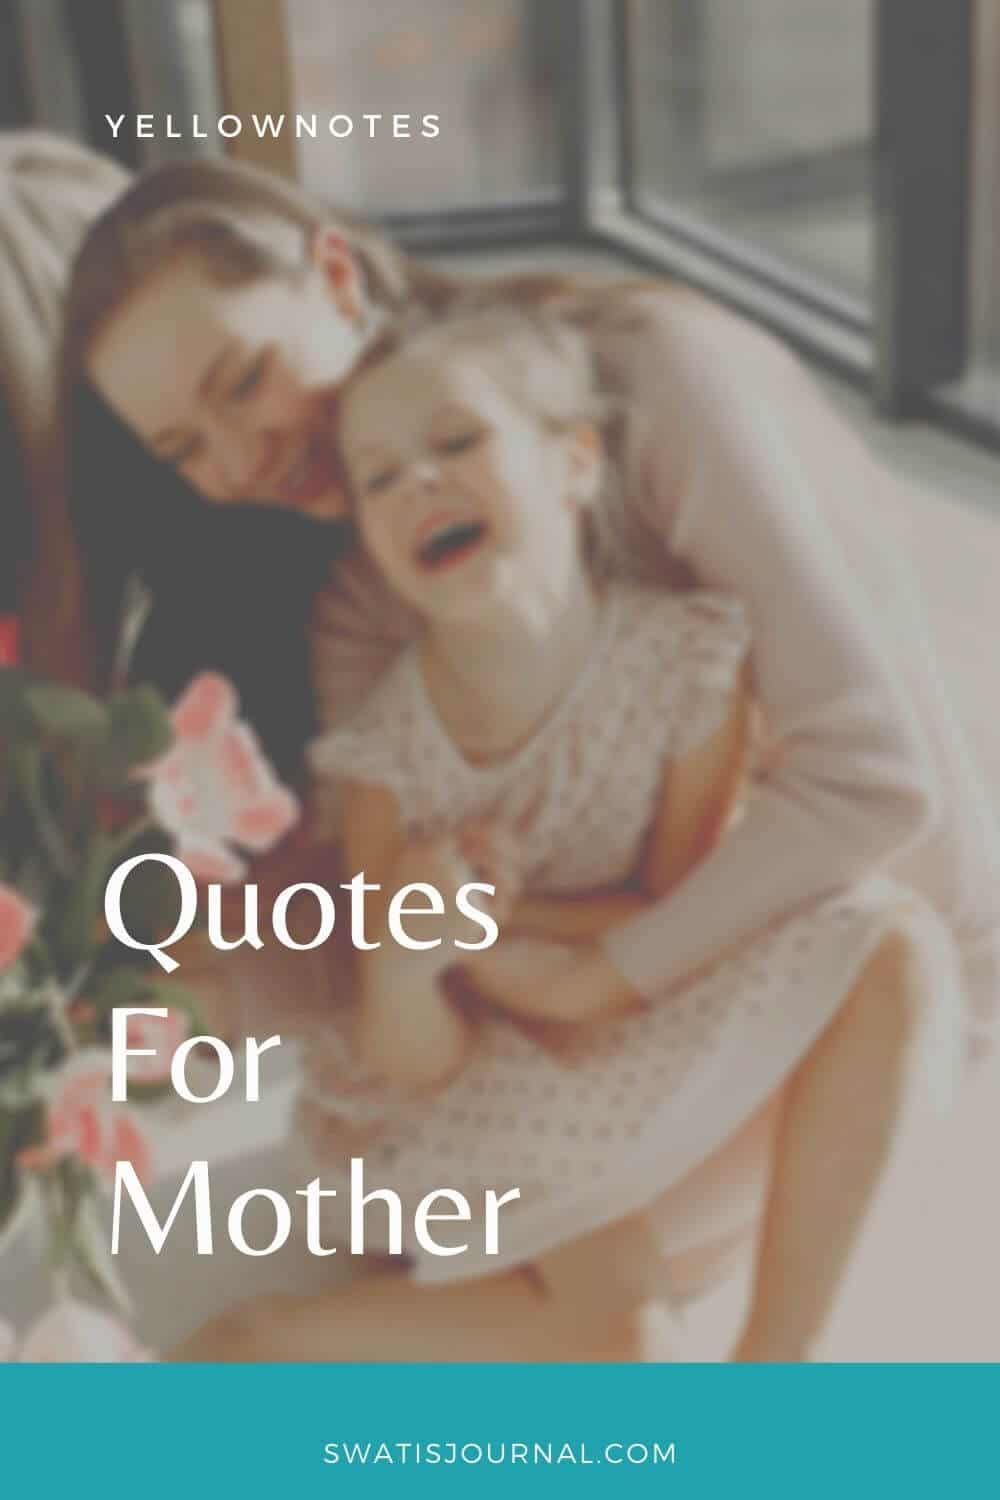 Yellownotes – Daily Quotes | Quote of the Week | May 2020 | Week 02 0 (0)